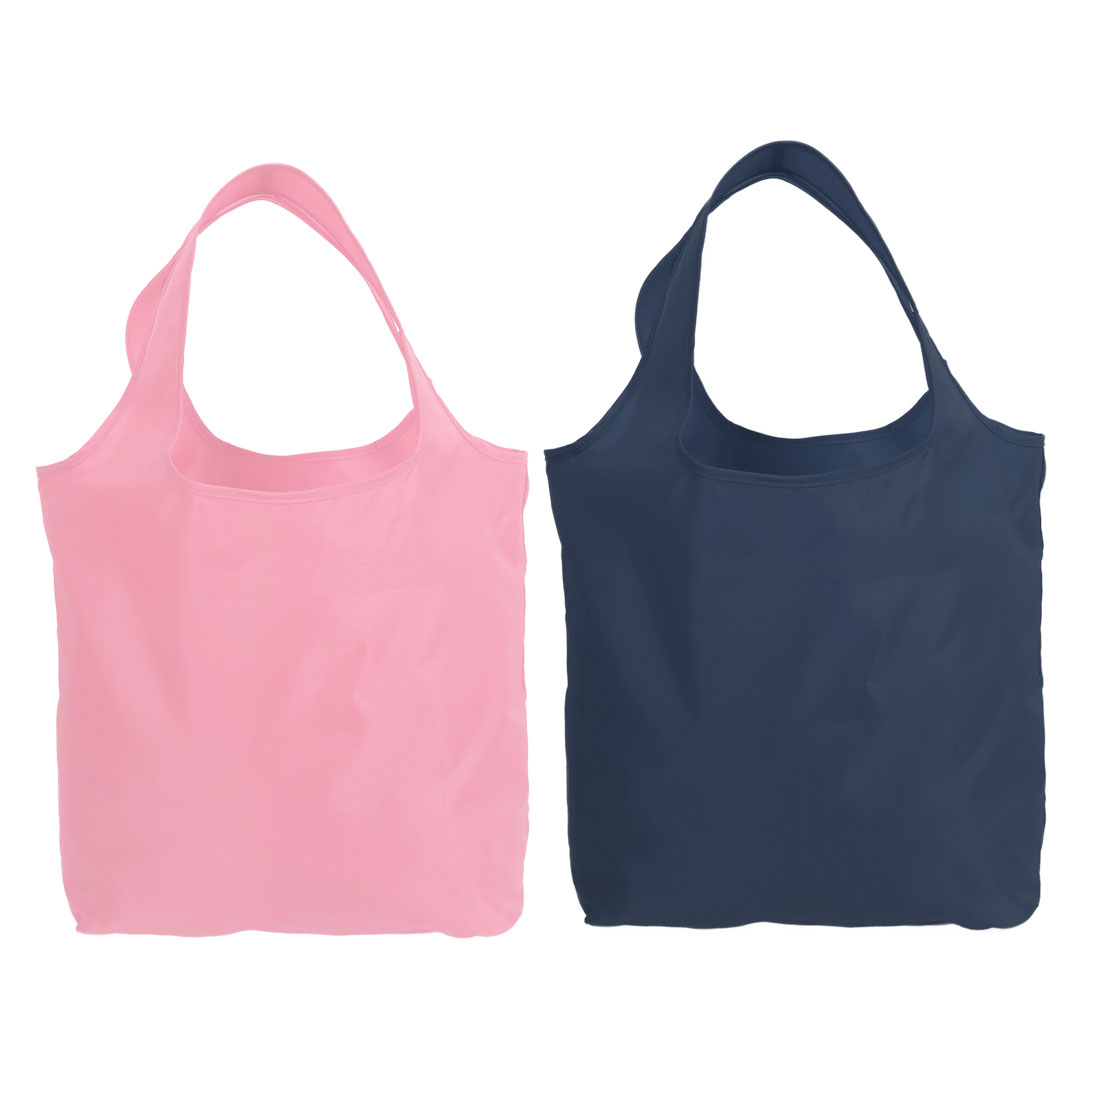 1805269860 Outdoor Polyester Shoulder Carrier Foldable Shopping Bag Navy ...